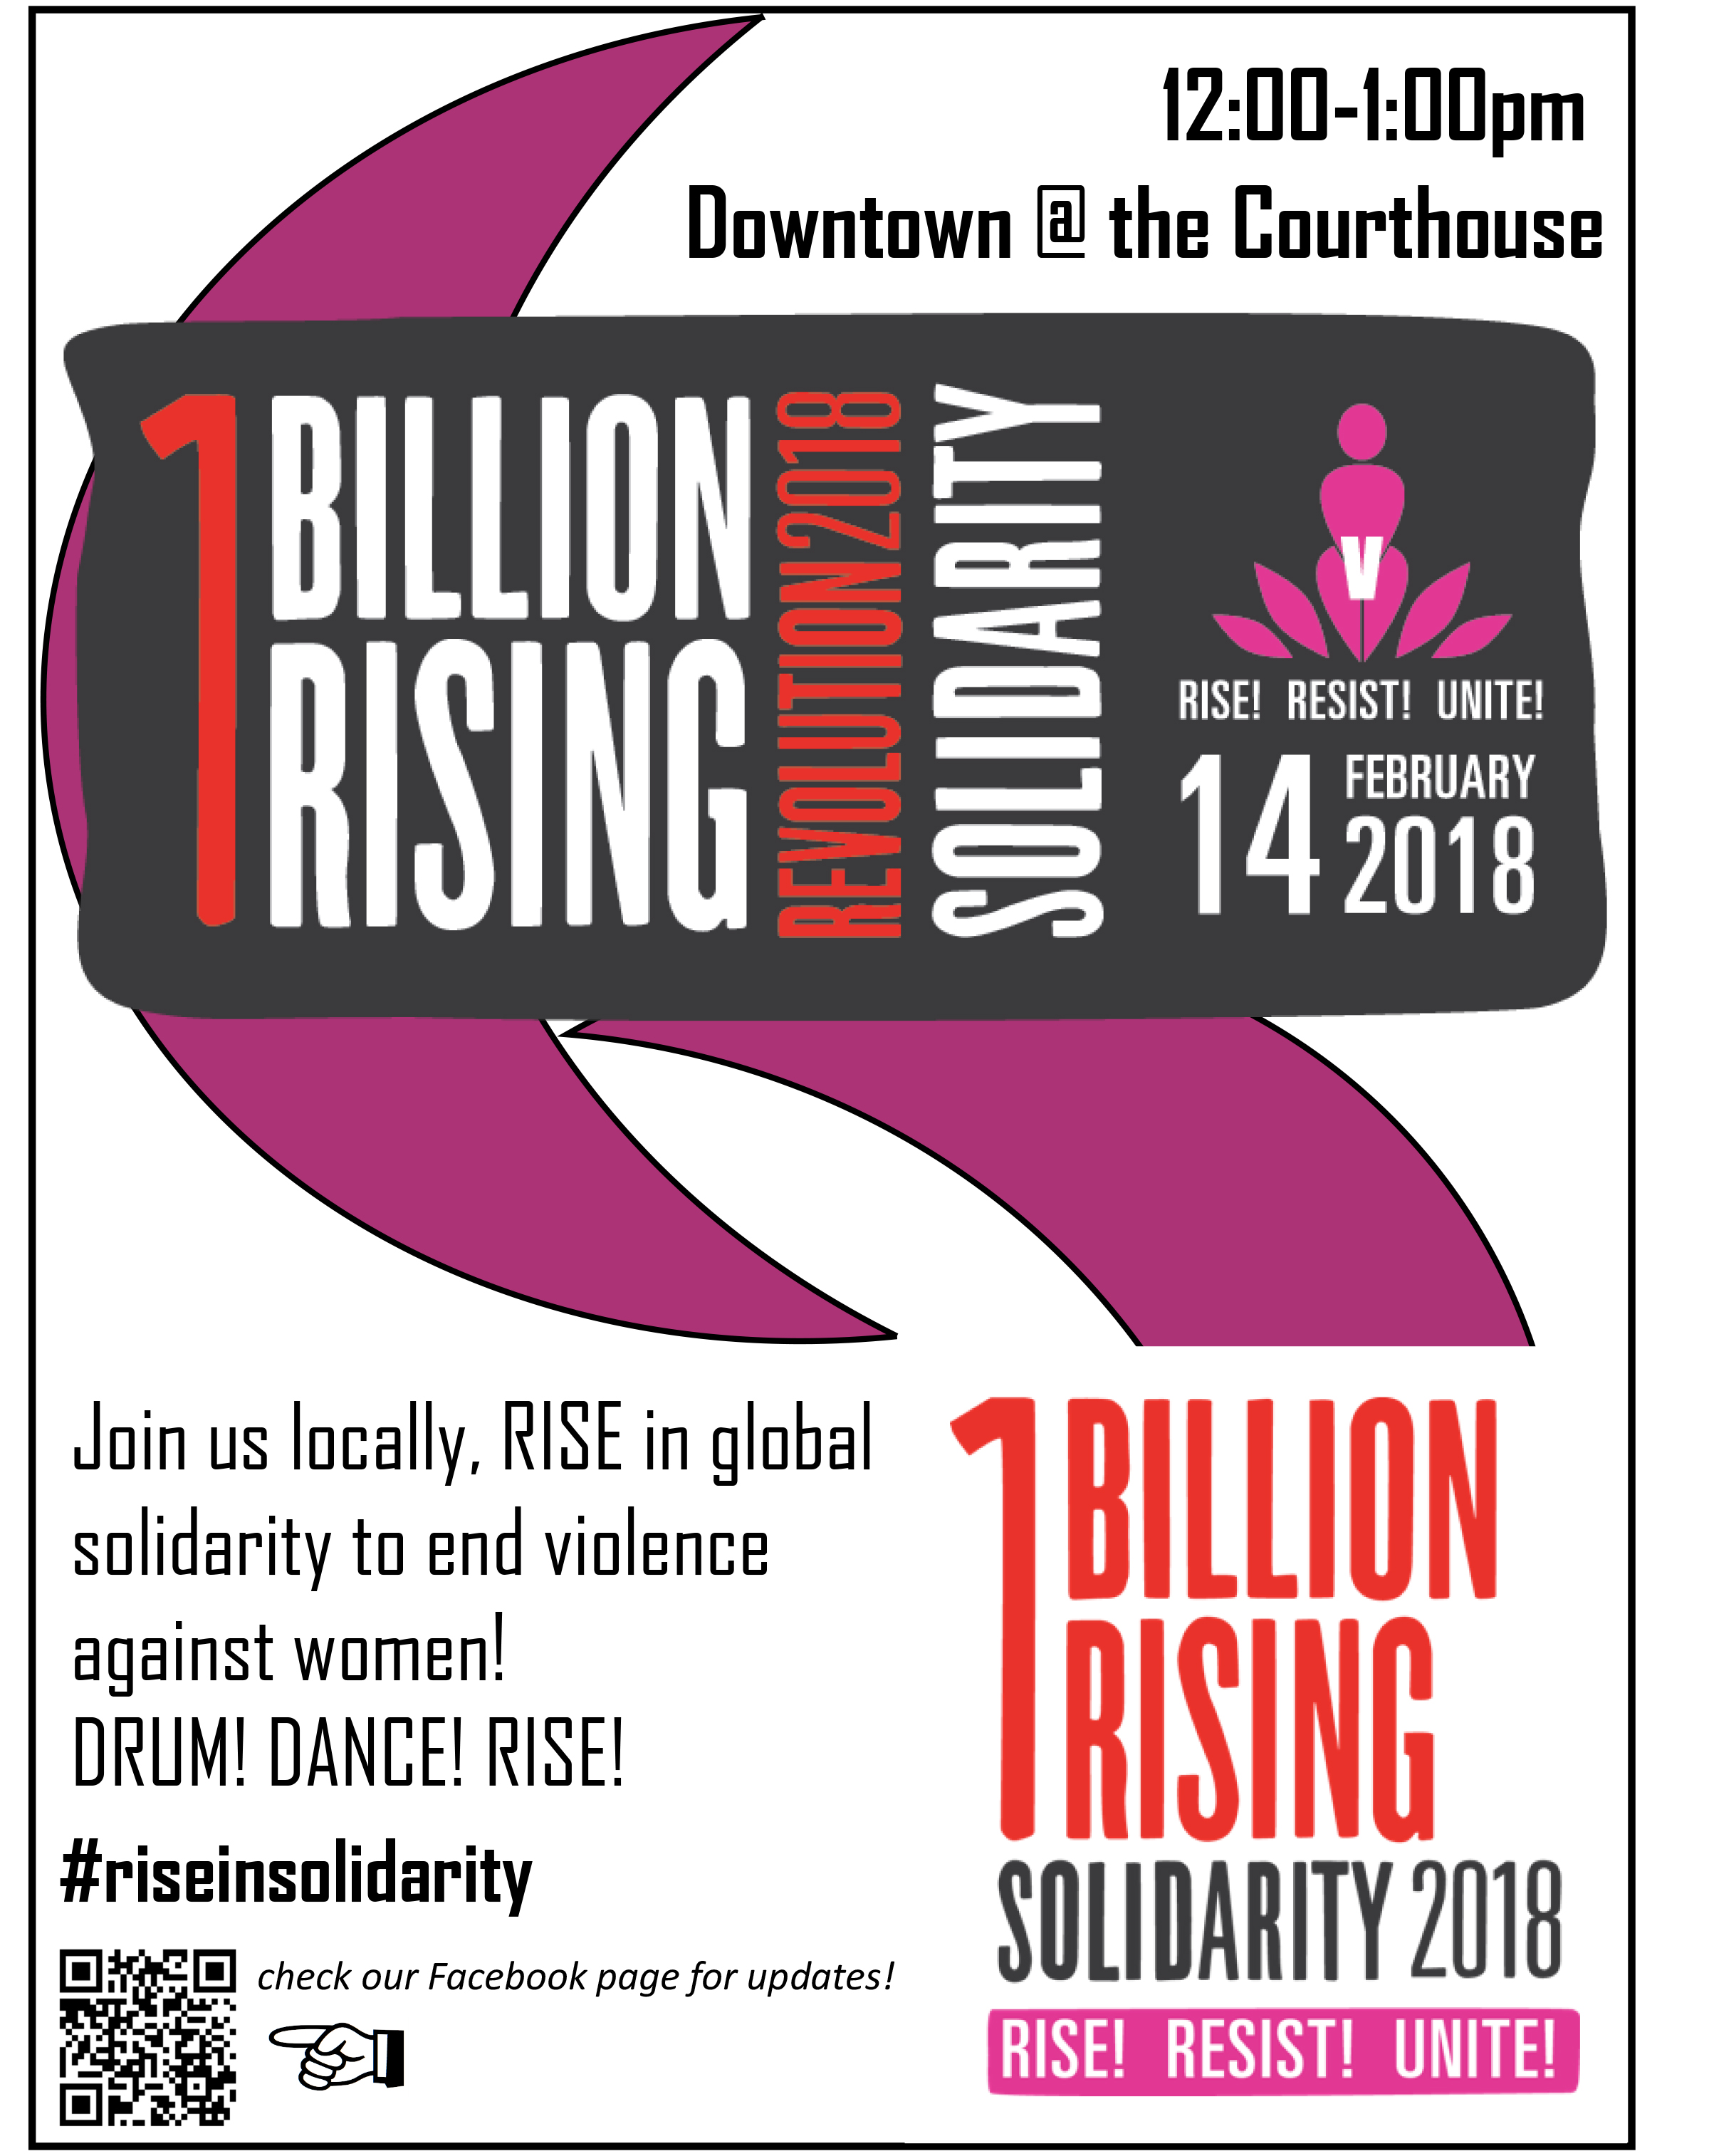 1 Billion Rising in Solidarity